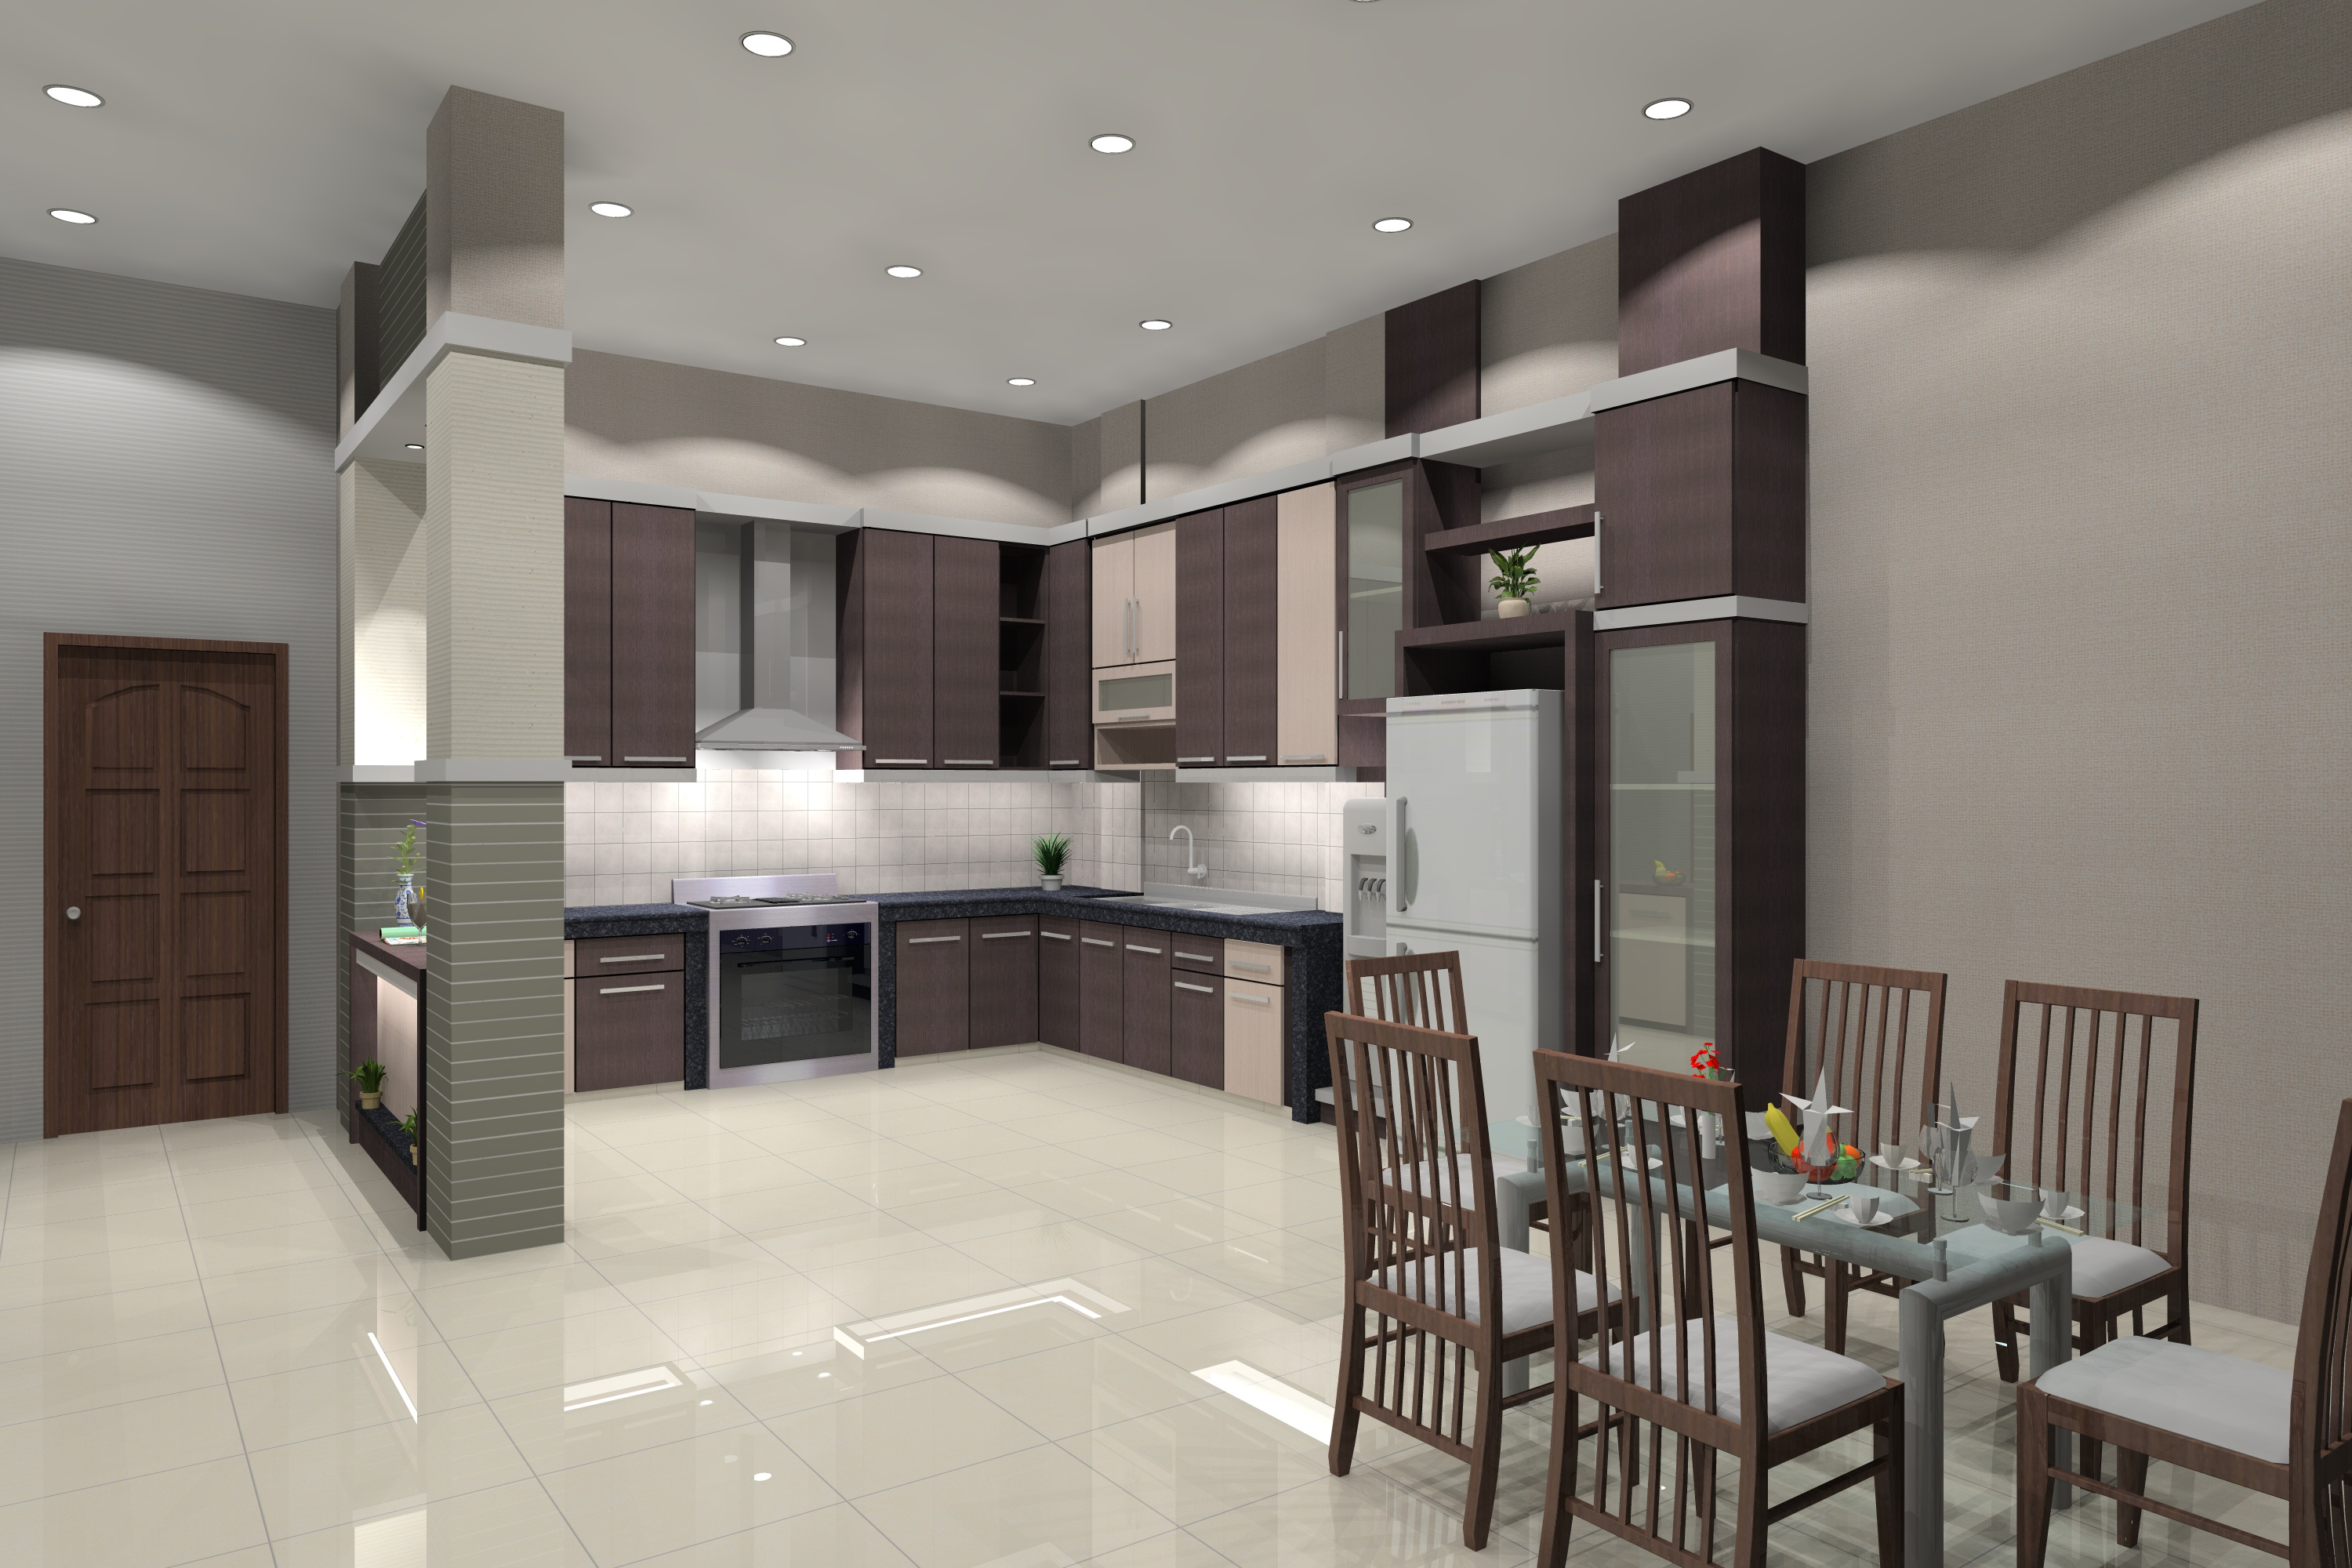 Design interior arsitek rumah desain interior rp for Designs of interior decoration